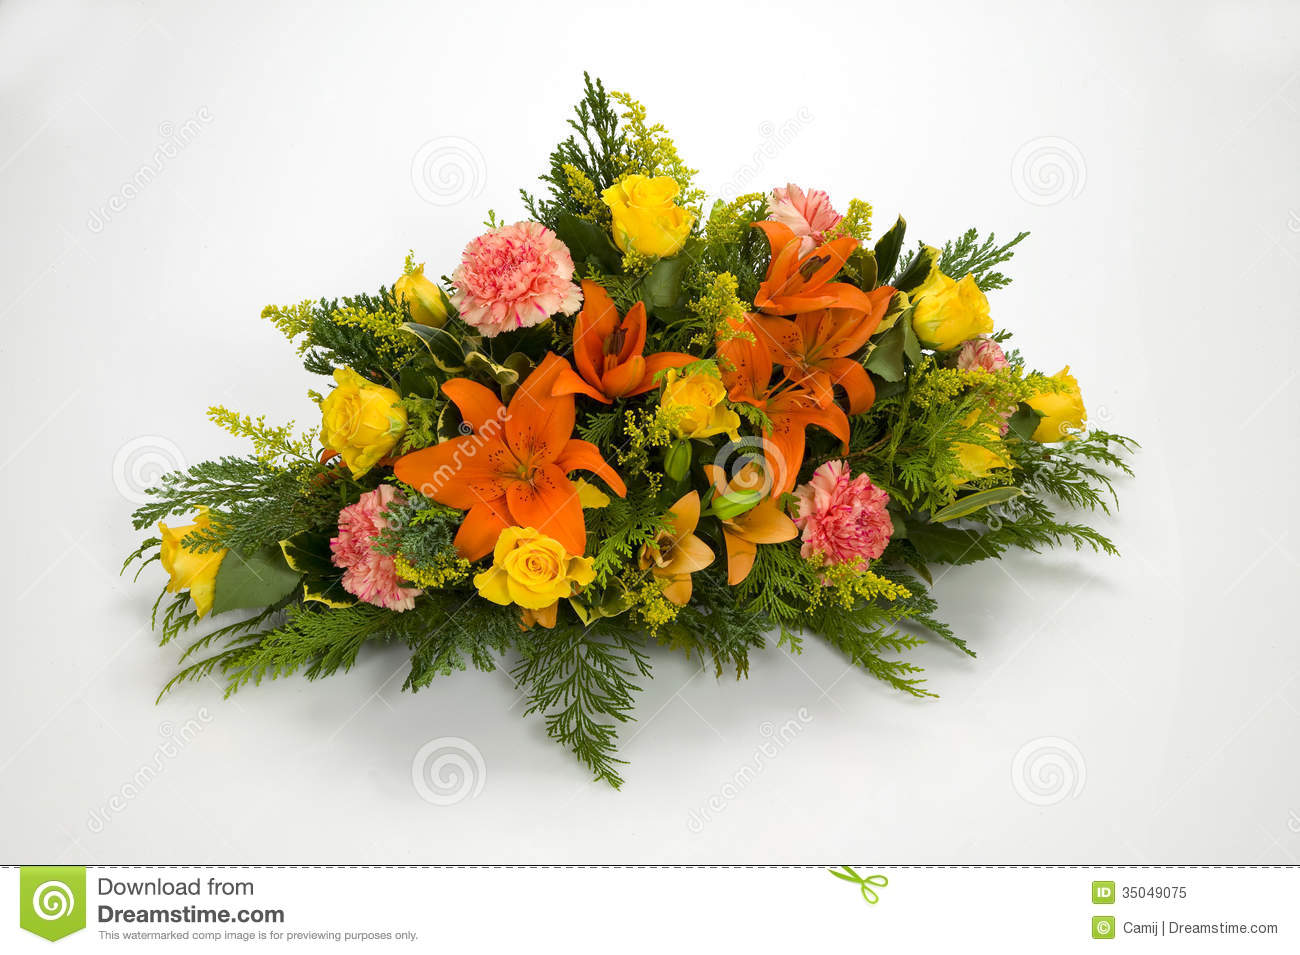 Colorful bouquet of flowers stock image image of celebration colorful bouquet of flowers izmirmasajfo Gallery